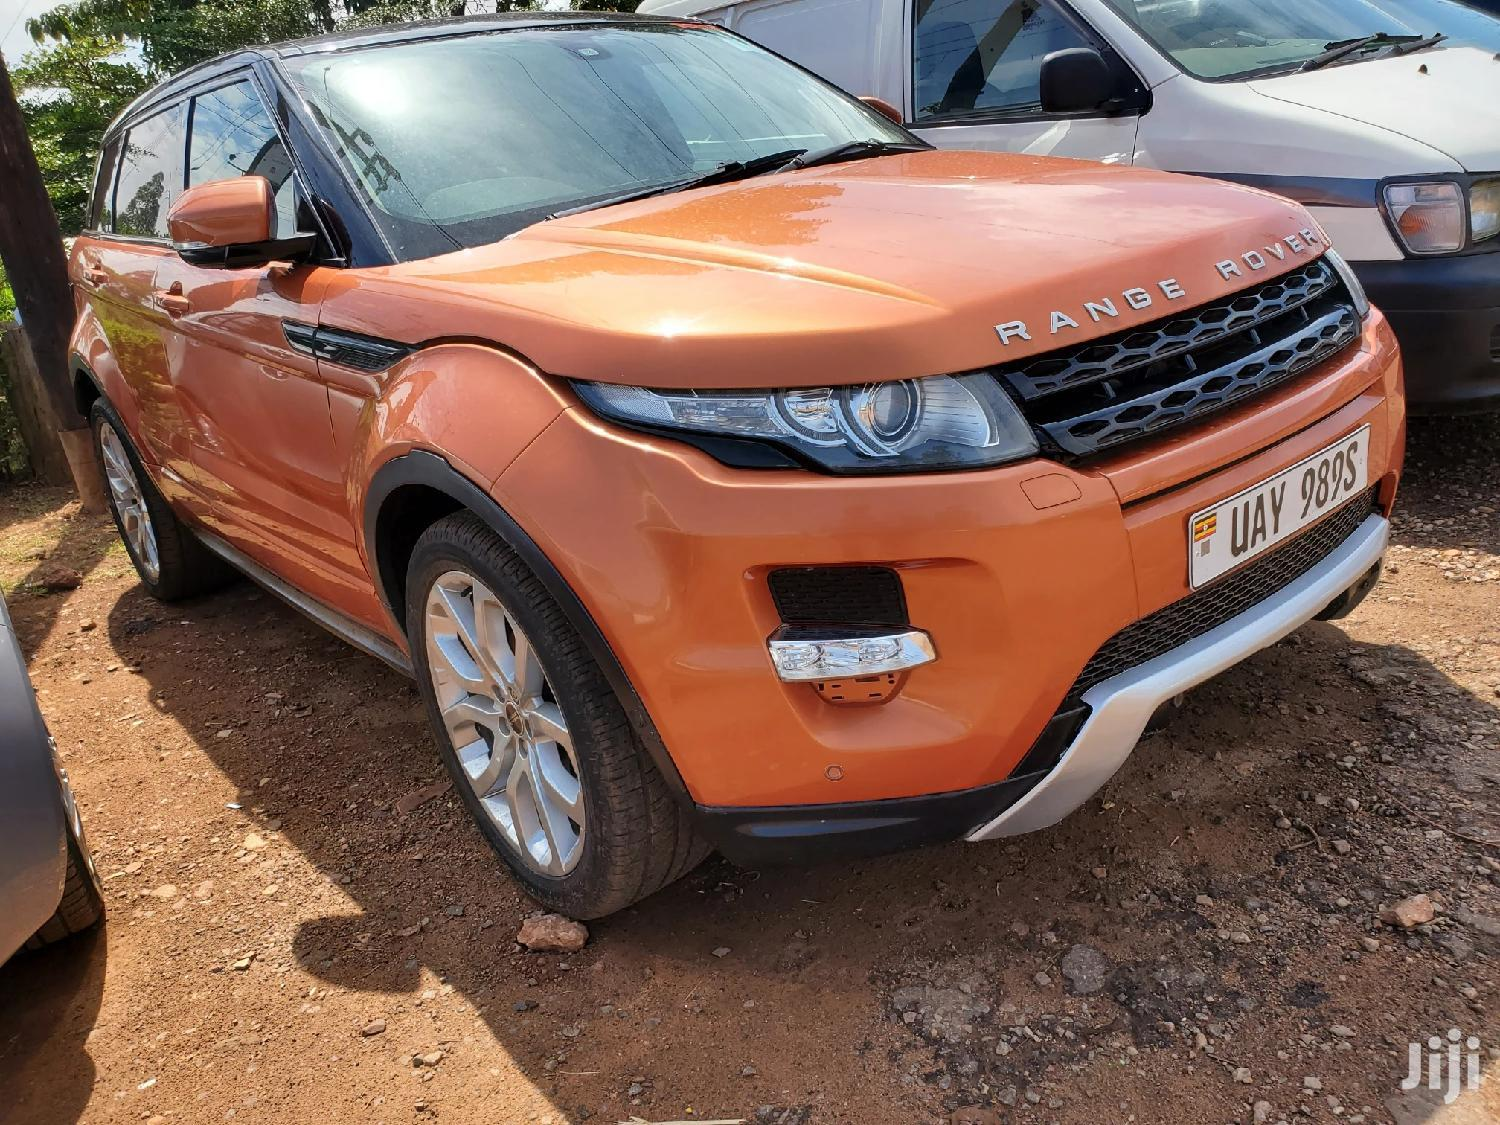 Land Rover Range Rover Evoque 2011 Orange | Cars for sale in Kampala, Central Region, Uganda